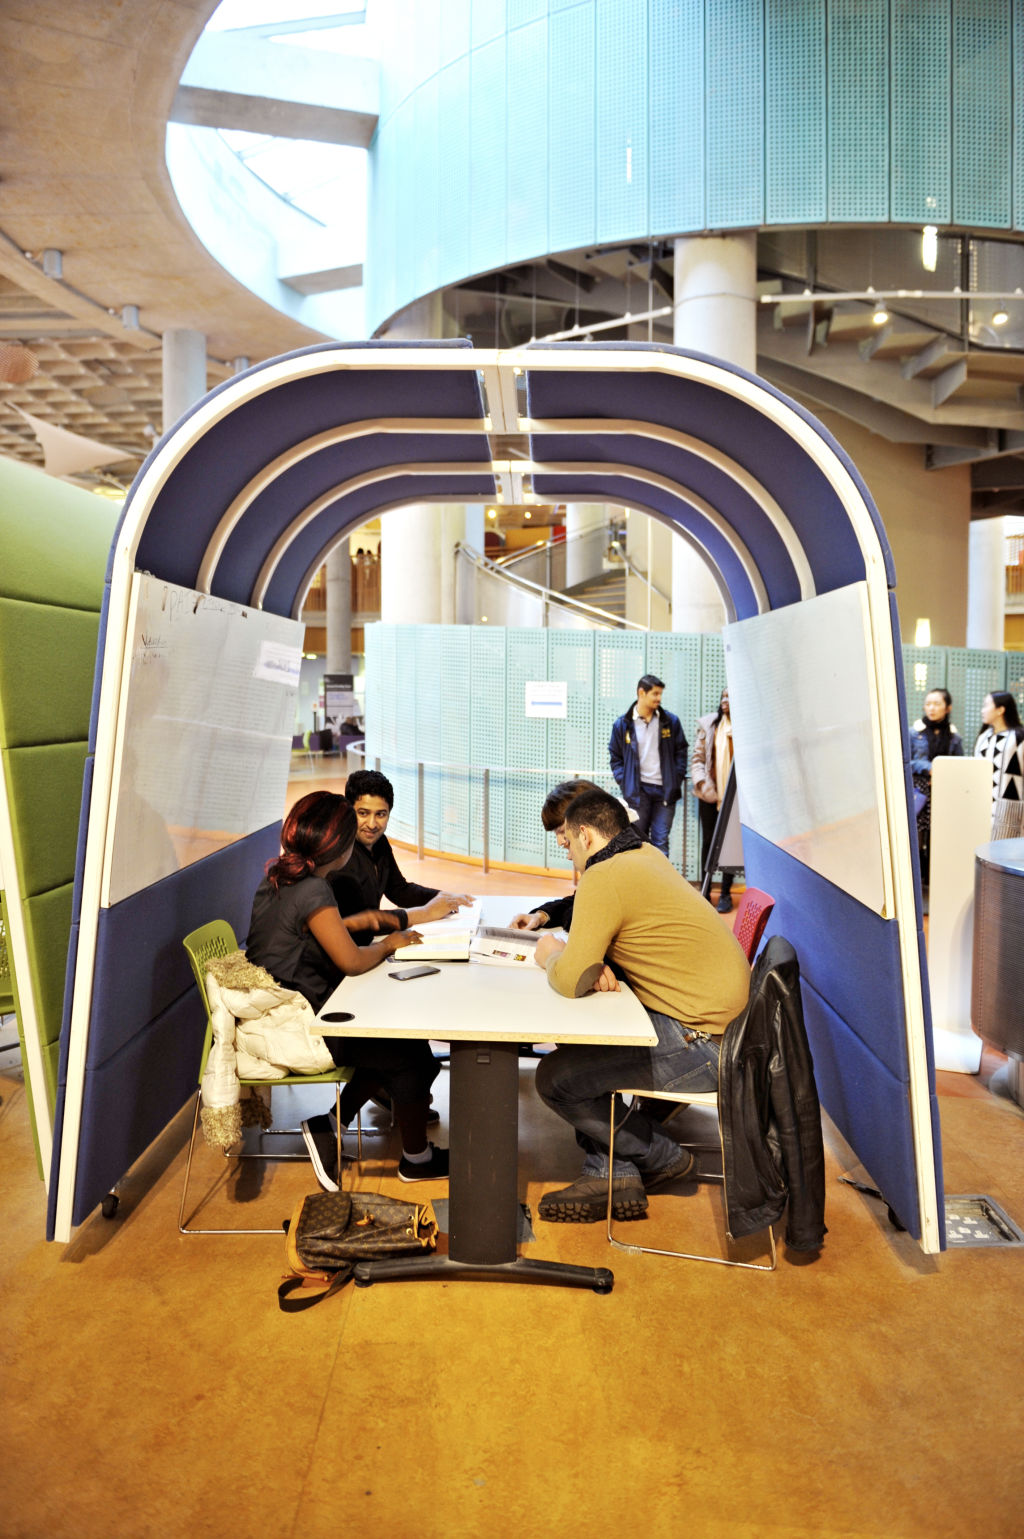 Students using the study pods